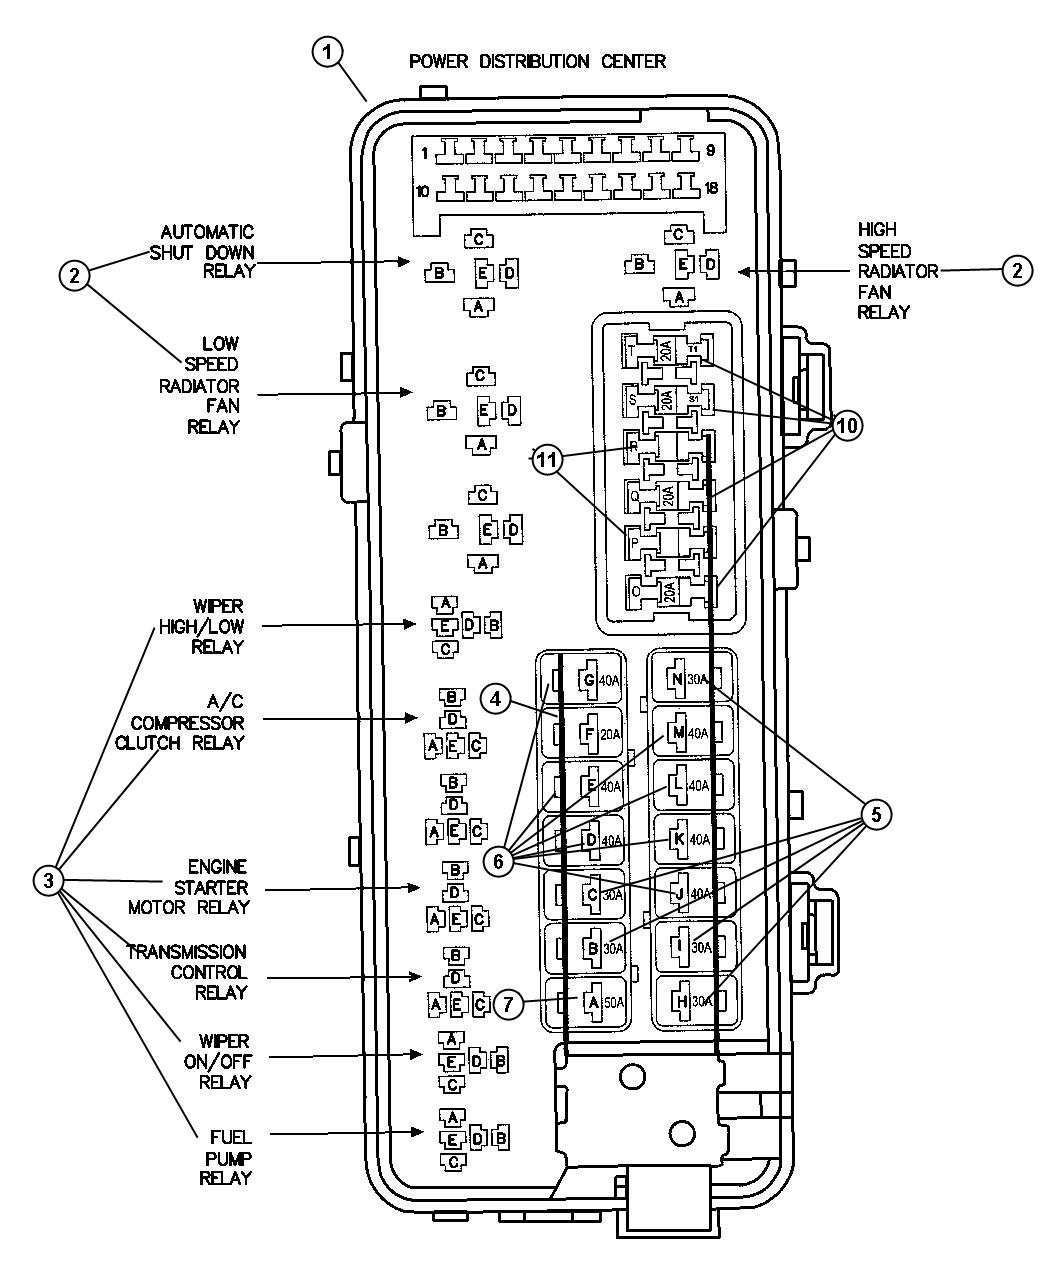 95 Chrysler Concorde Fuse Diagram on 2000 dodge intrepid recalls